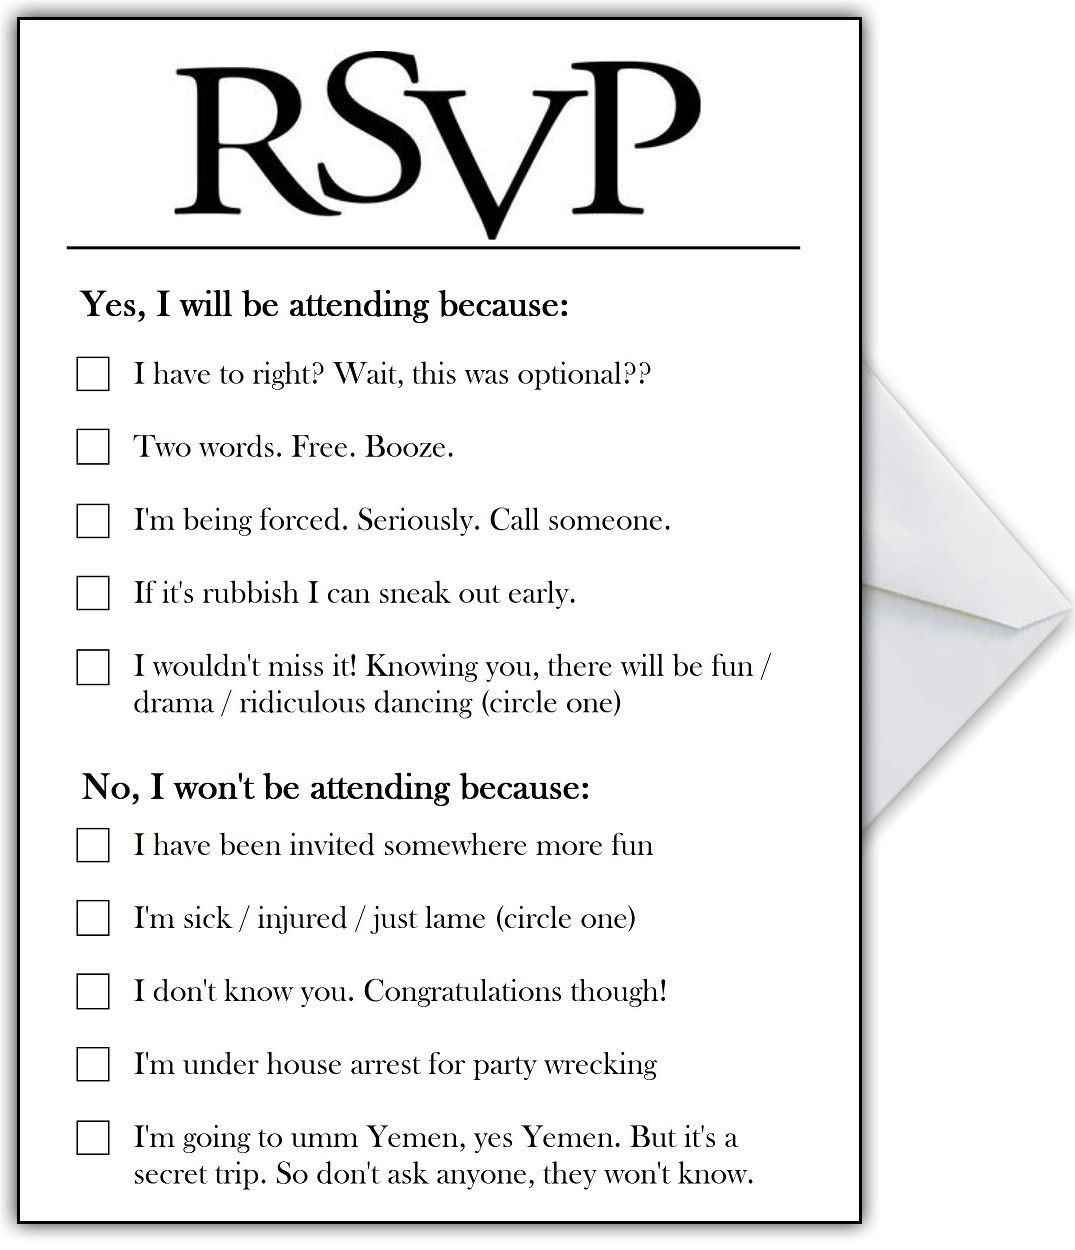 RSVP Card With Hilarious Options Or Add Your Own Funny Reasons